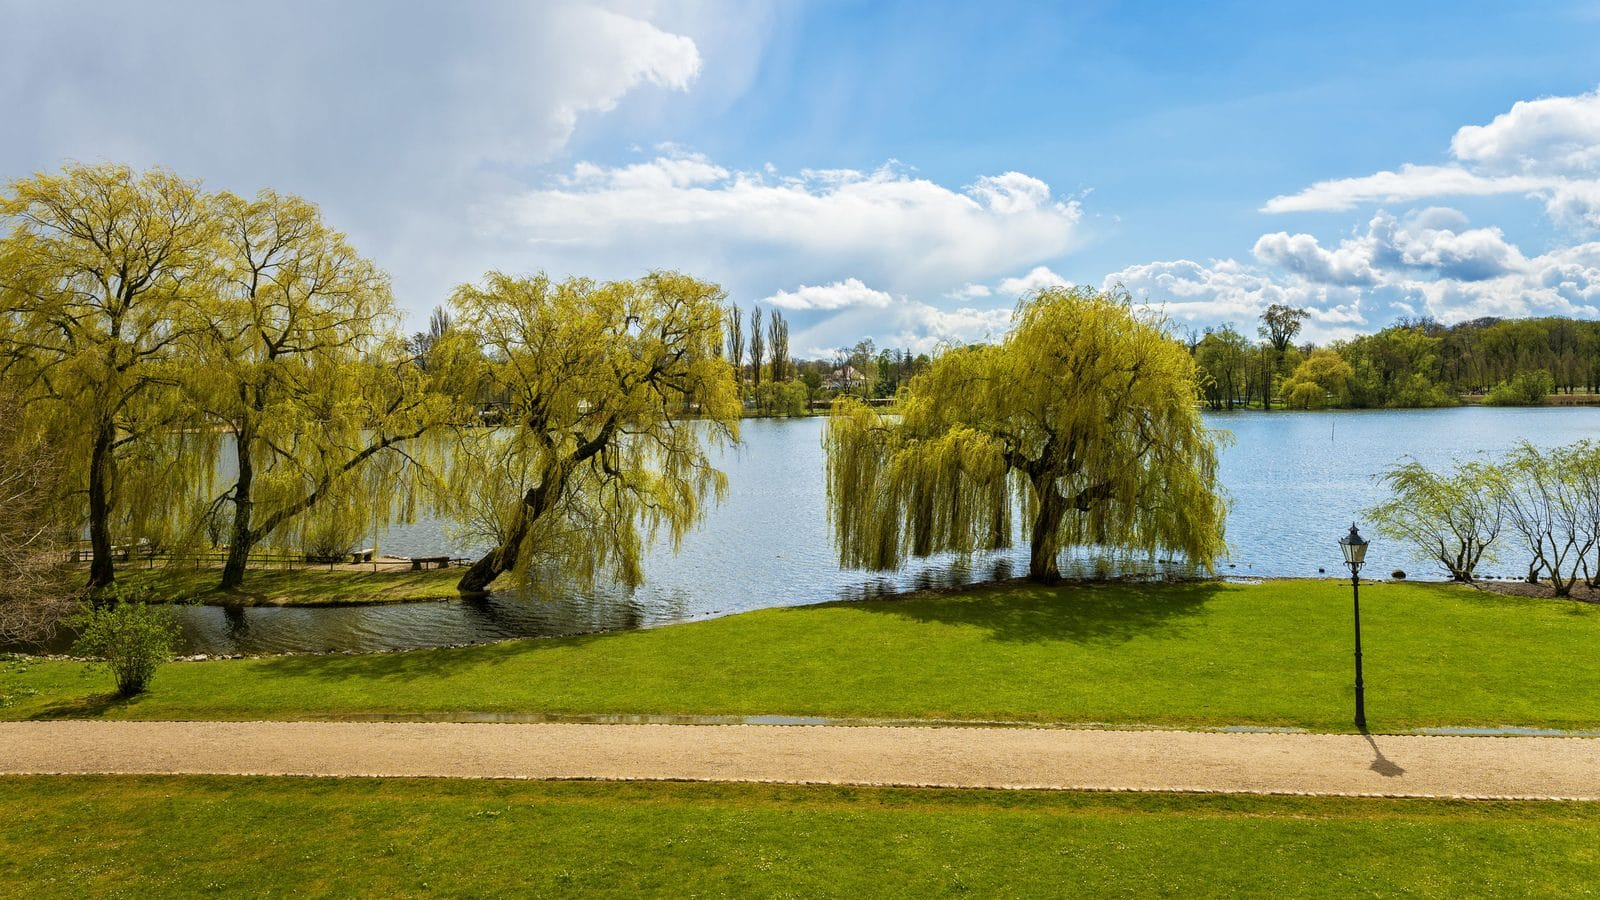 Tree of the month: The Golden Weeping Willow